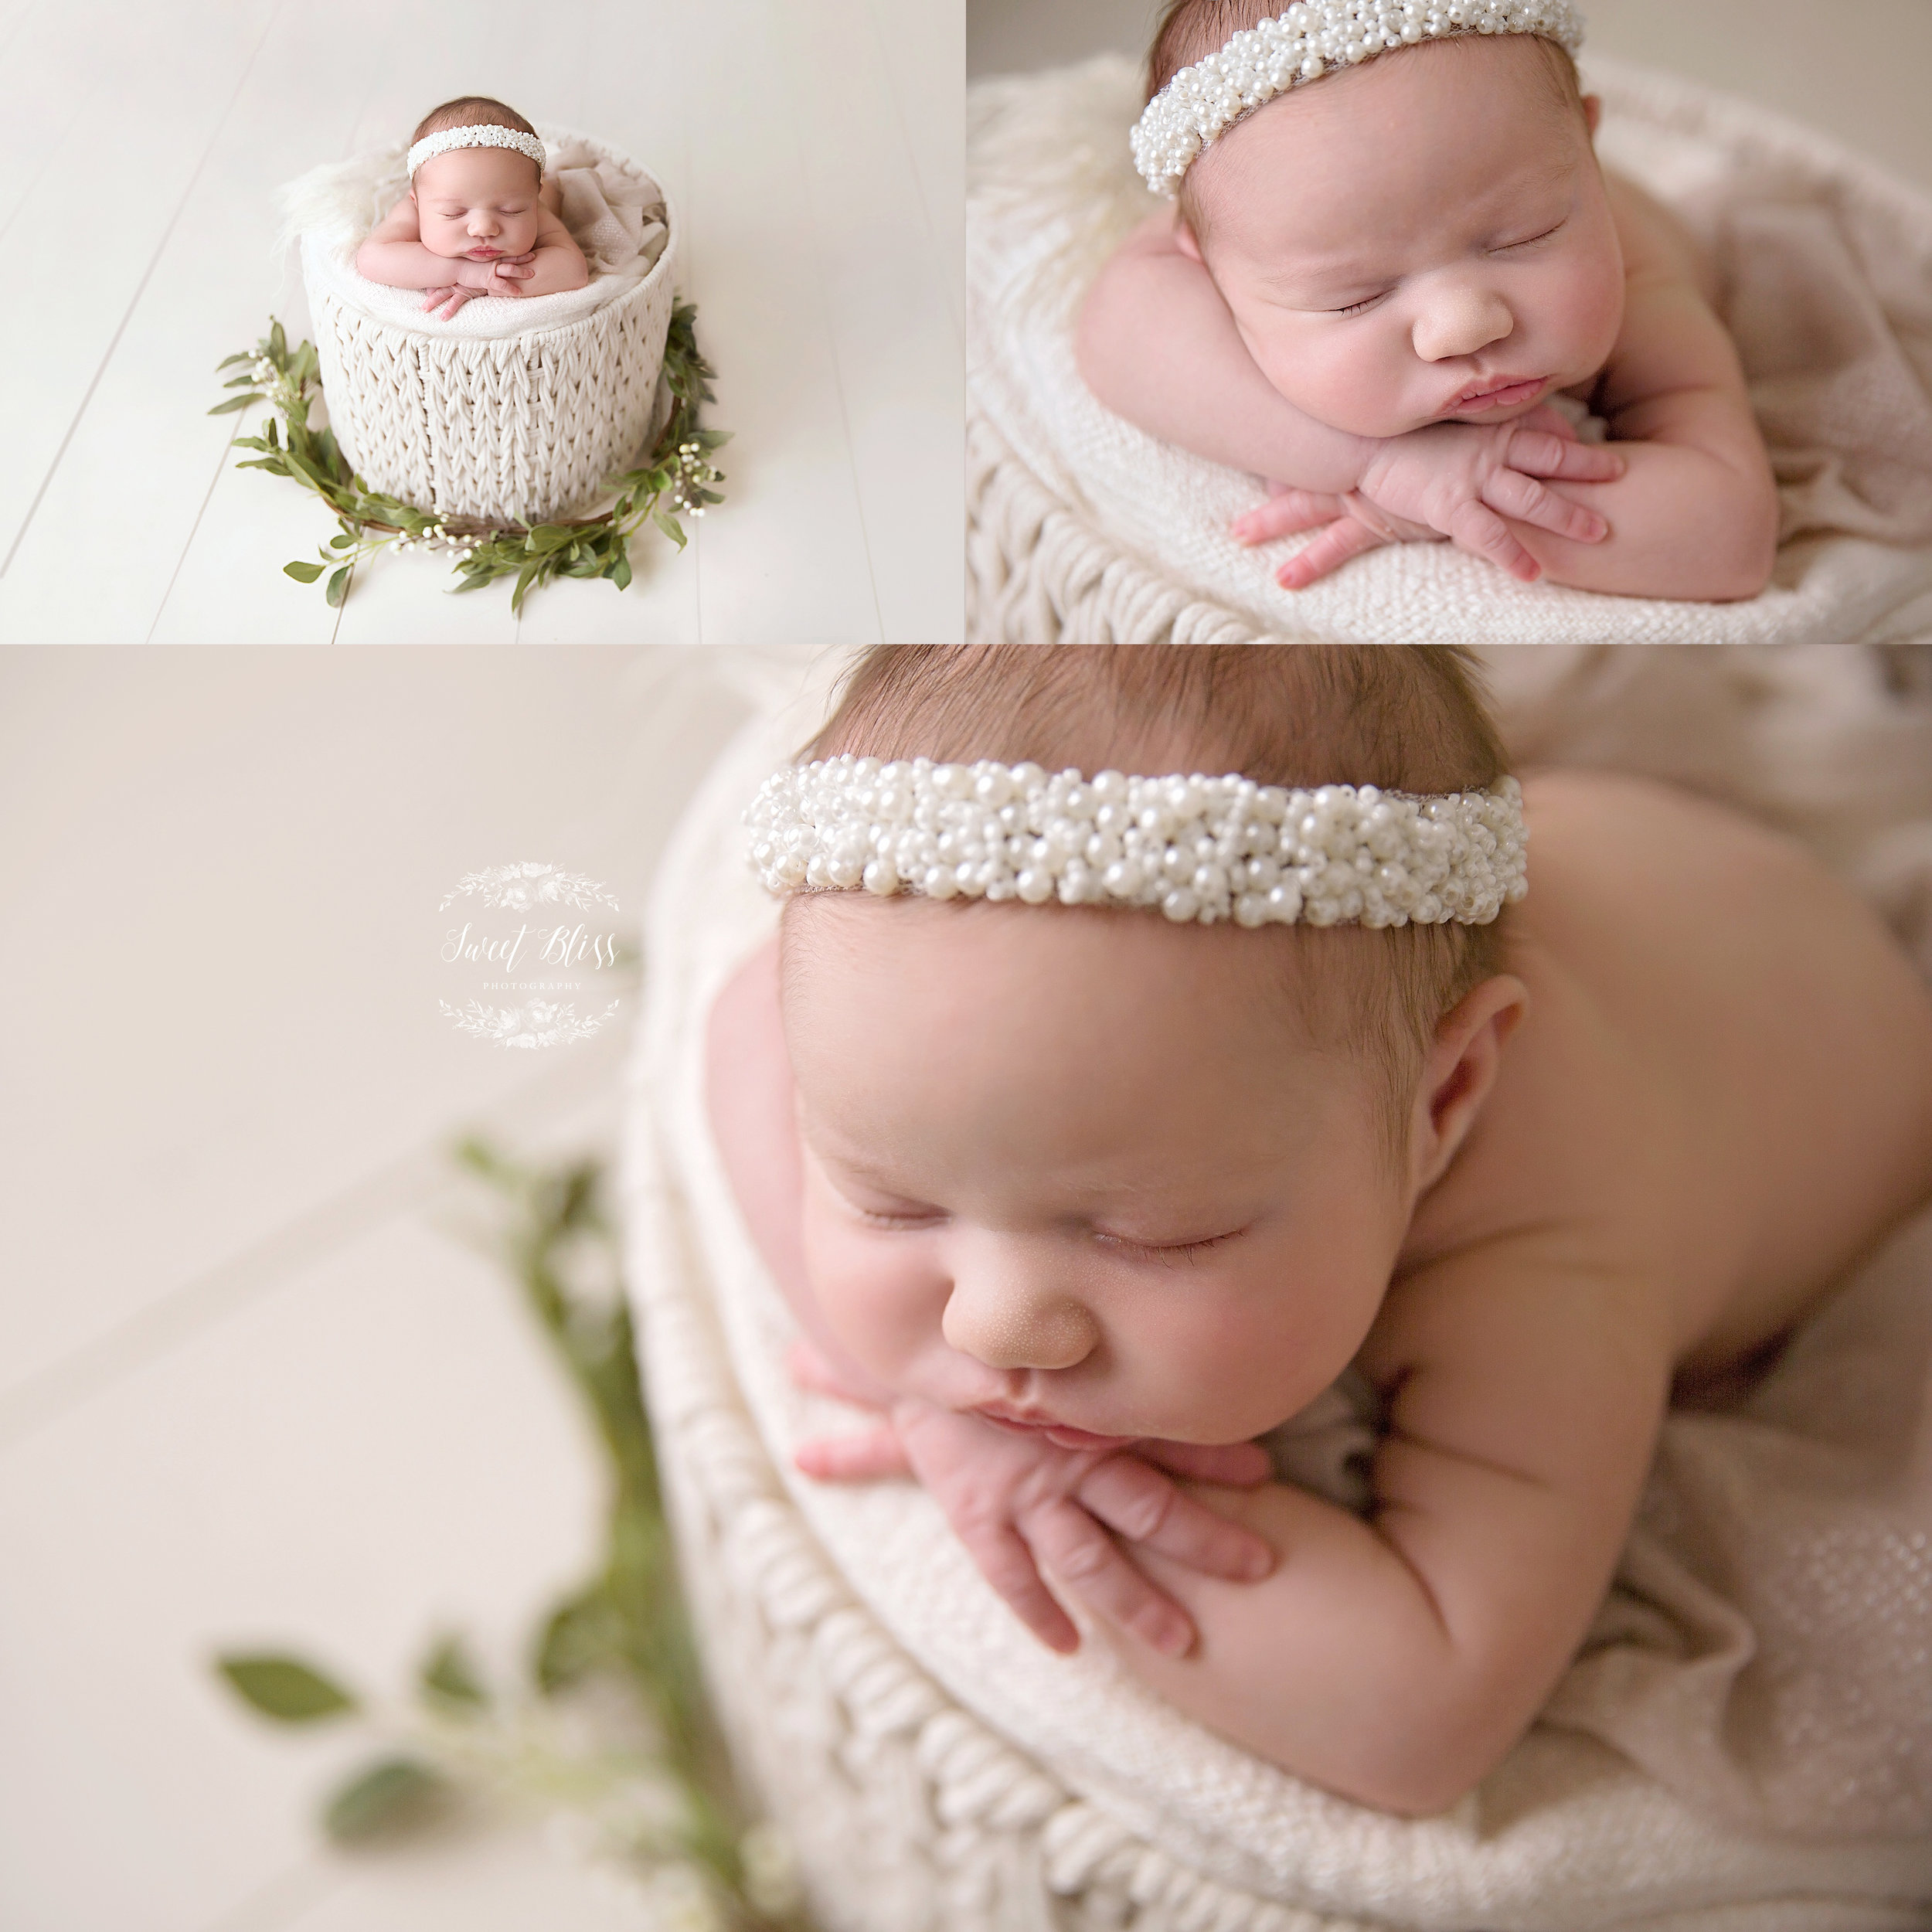 baltimorenewbornphotographer_harfordcountynewborn_sweetblissphotography_whitegarland1.jpg